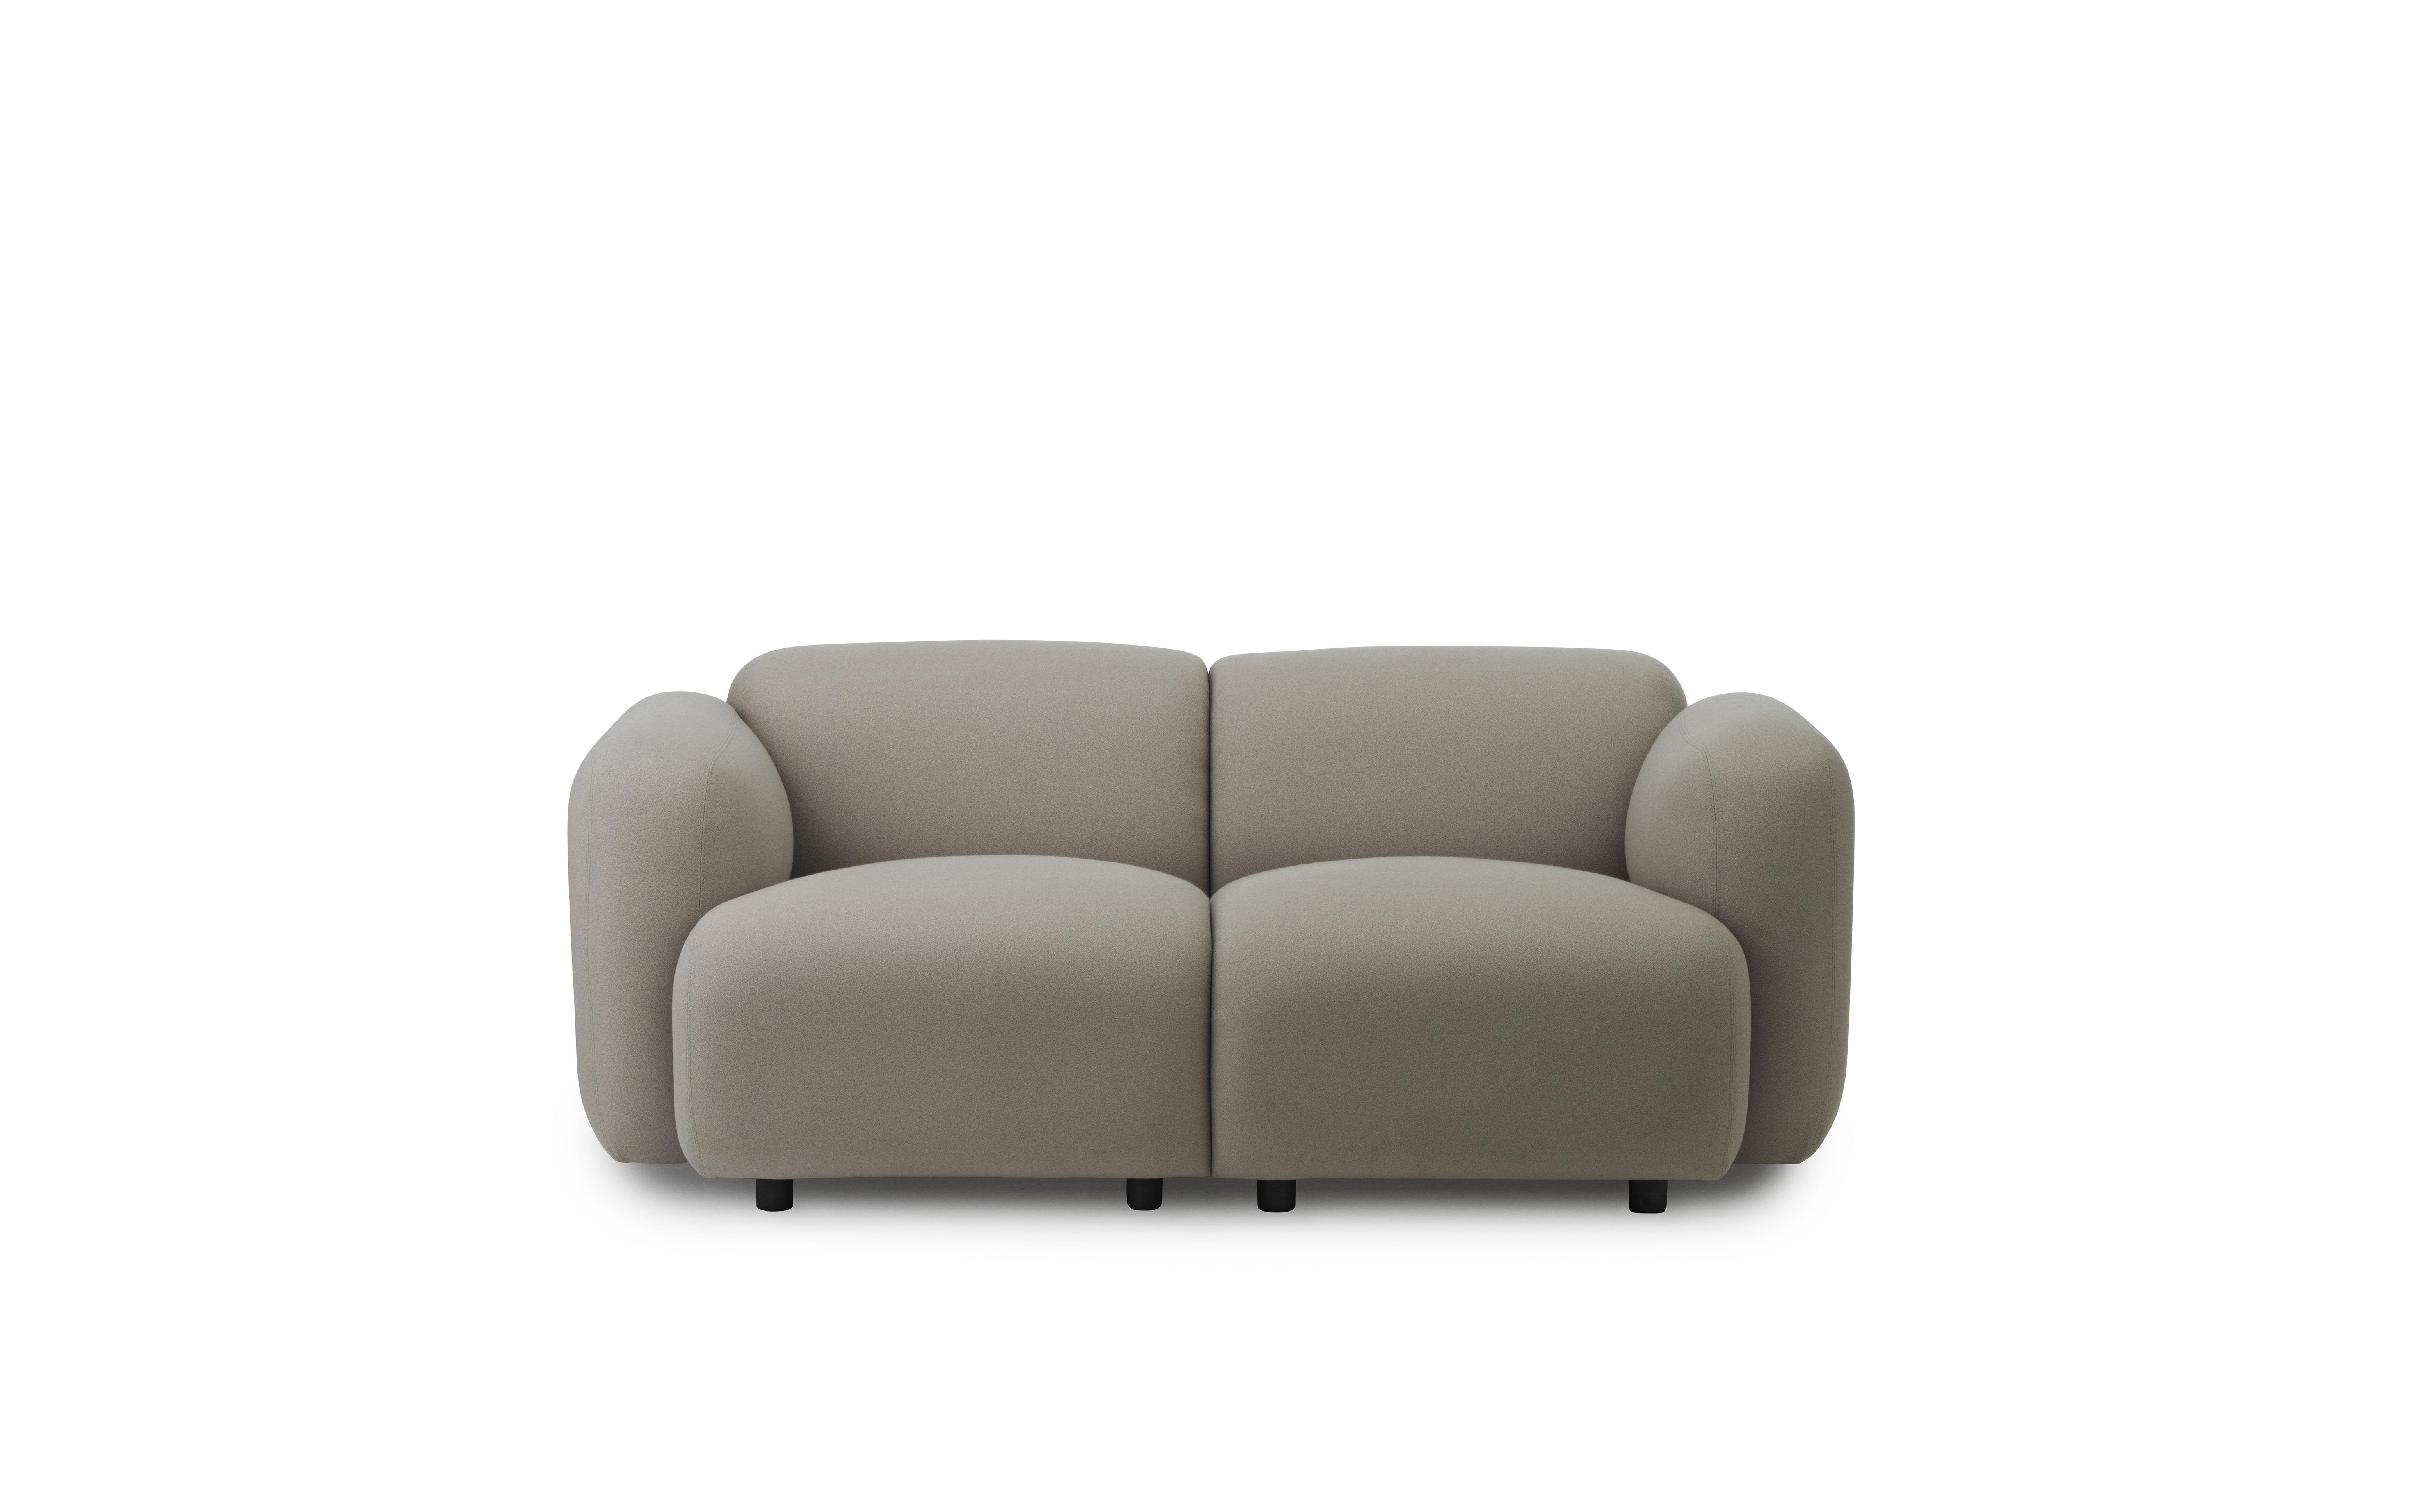 Swell Sofa 2 Seater1